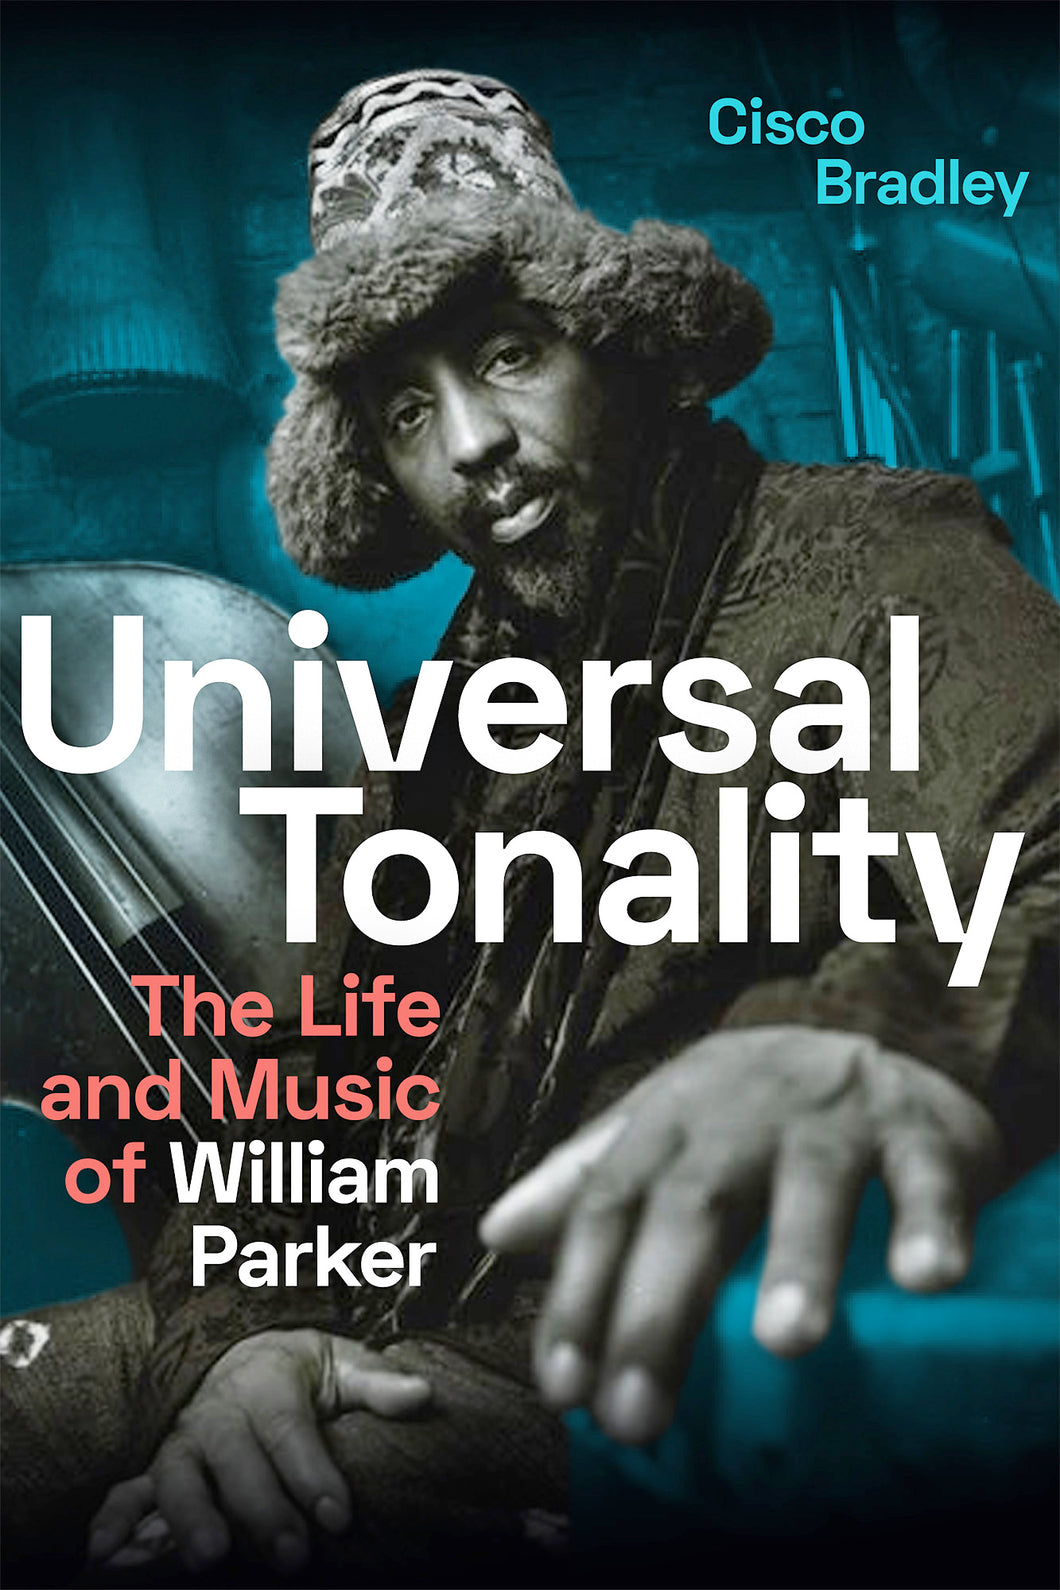 Universal Tonality: The Life and Music of William Parker